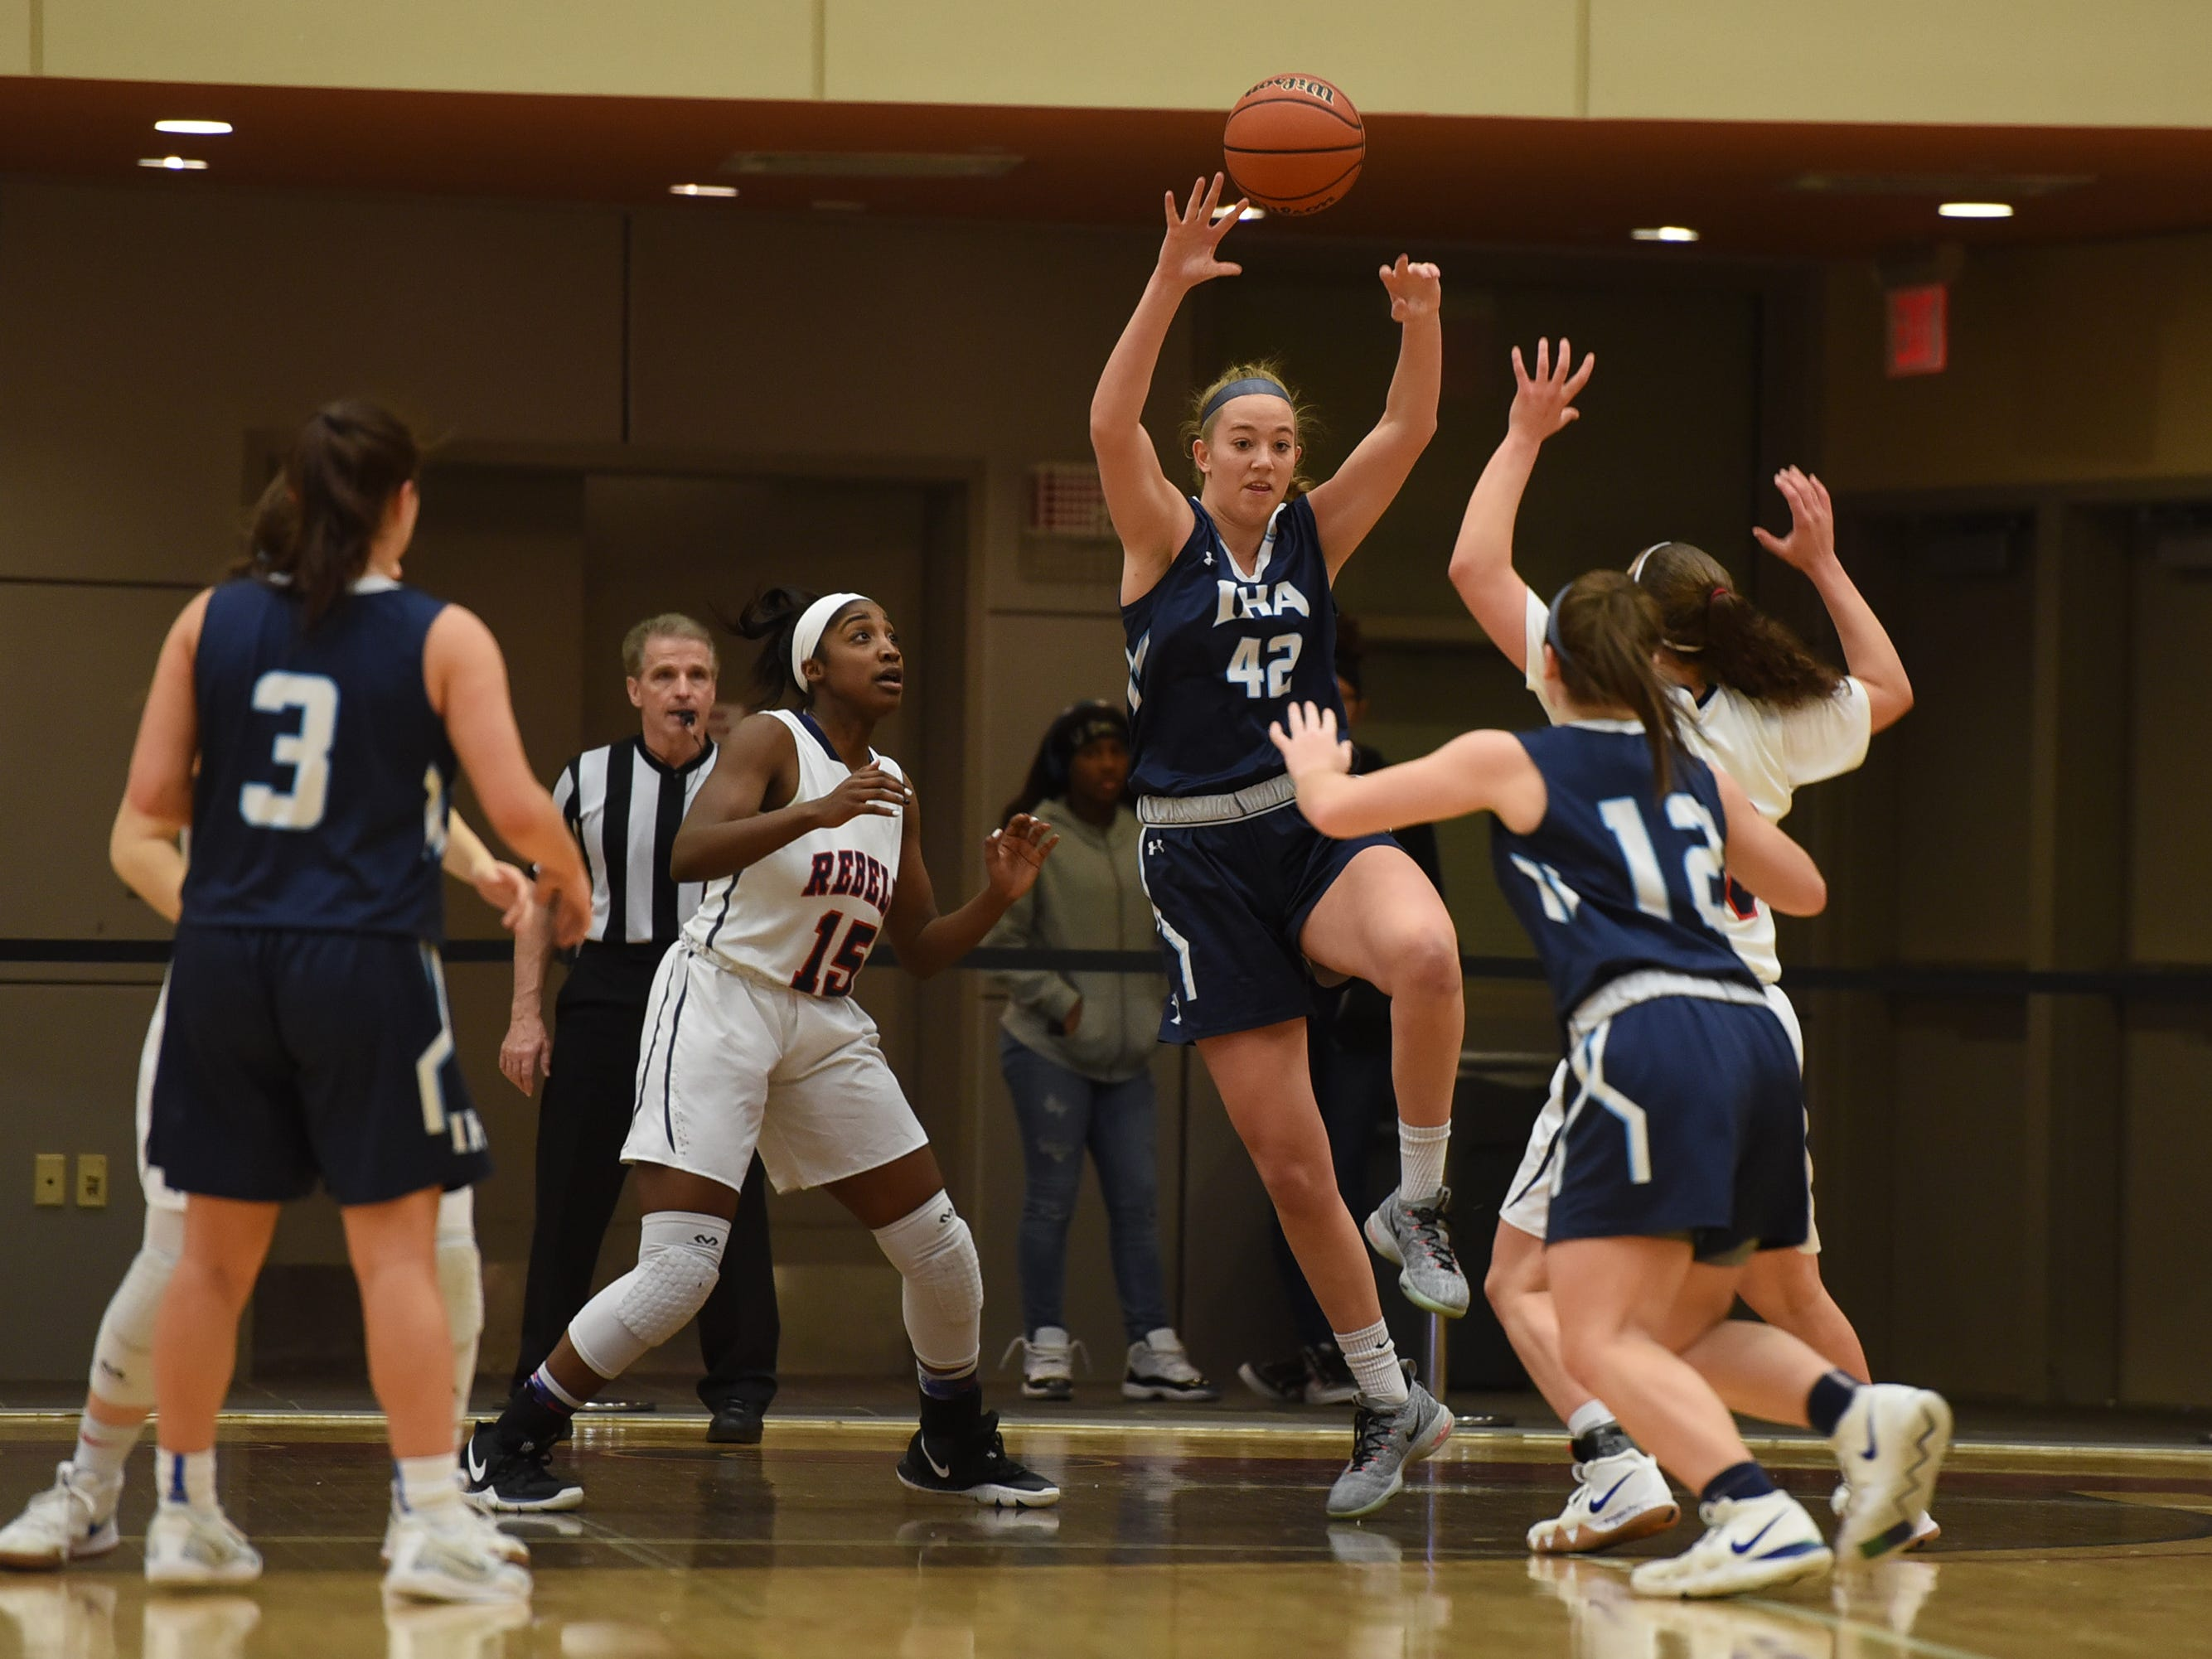 Anna Morris (no.42) of Immaculate Heart Academy makes a pass as they play against Saddle River Day in the first half during the Bergen County girls basketball final at Ramapo College in Mahwah on 02/17/19.